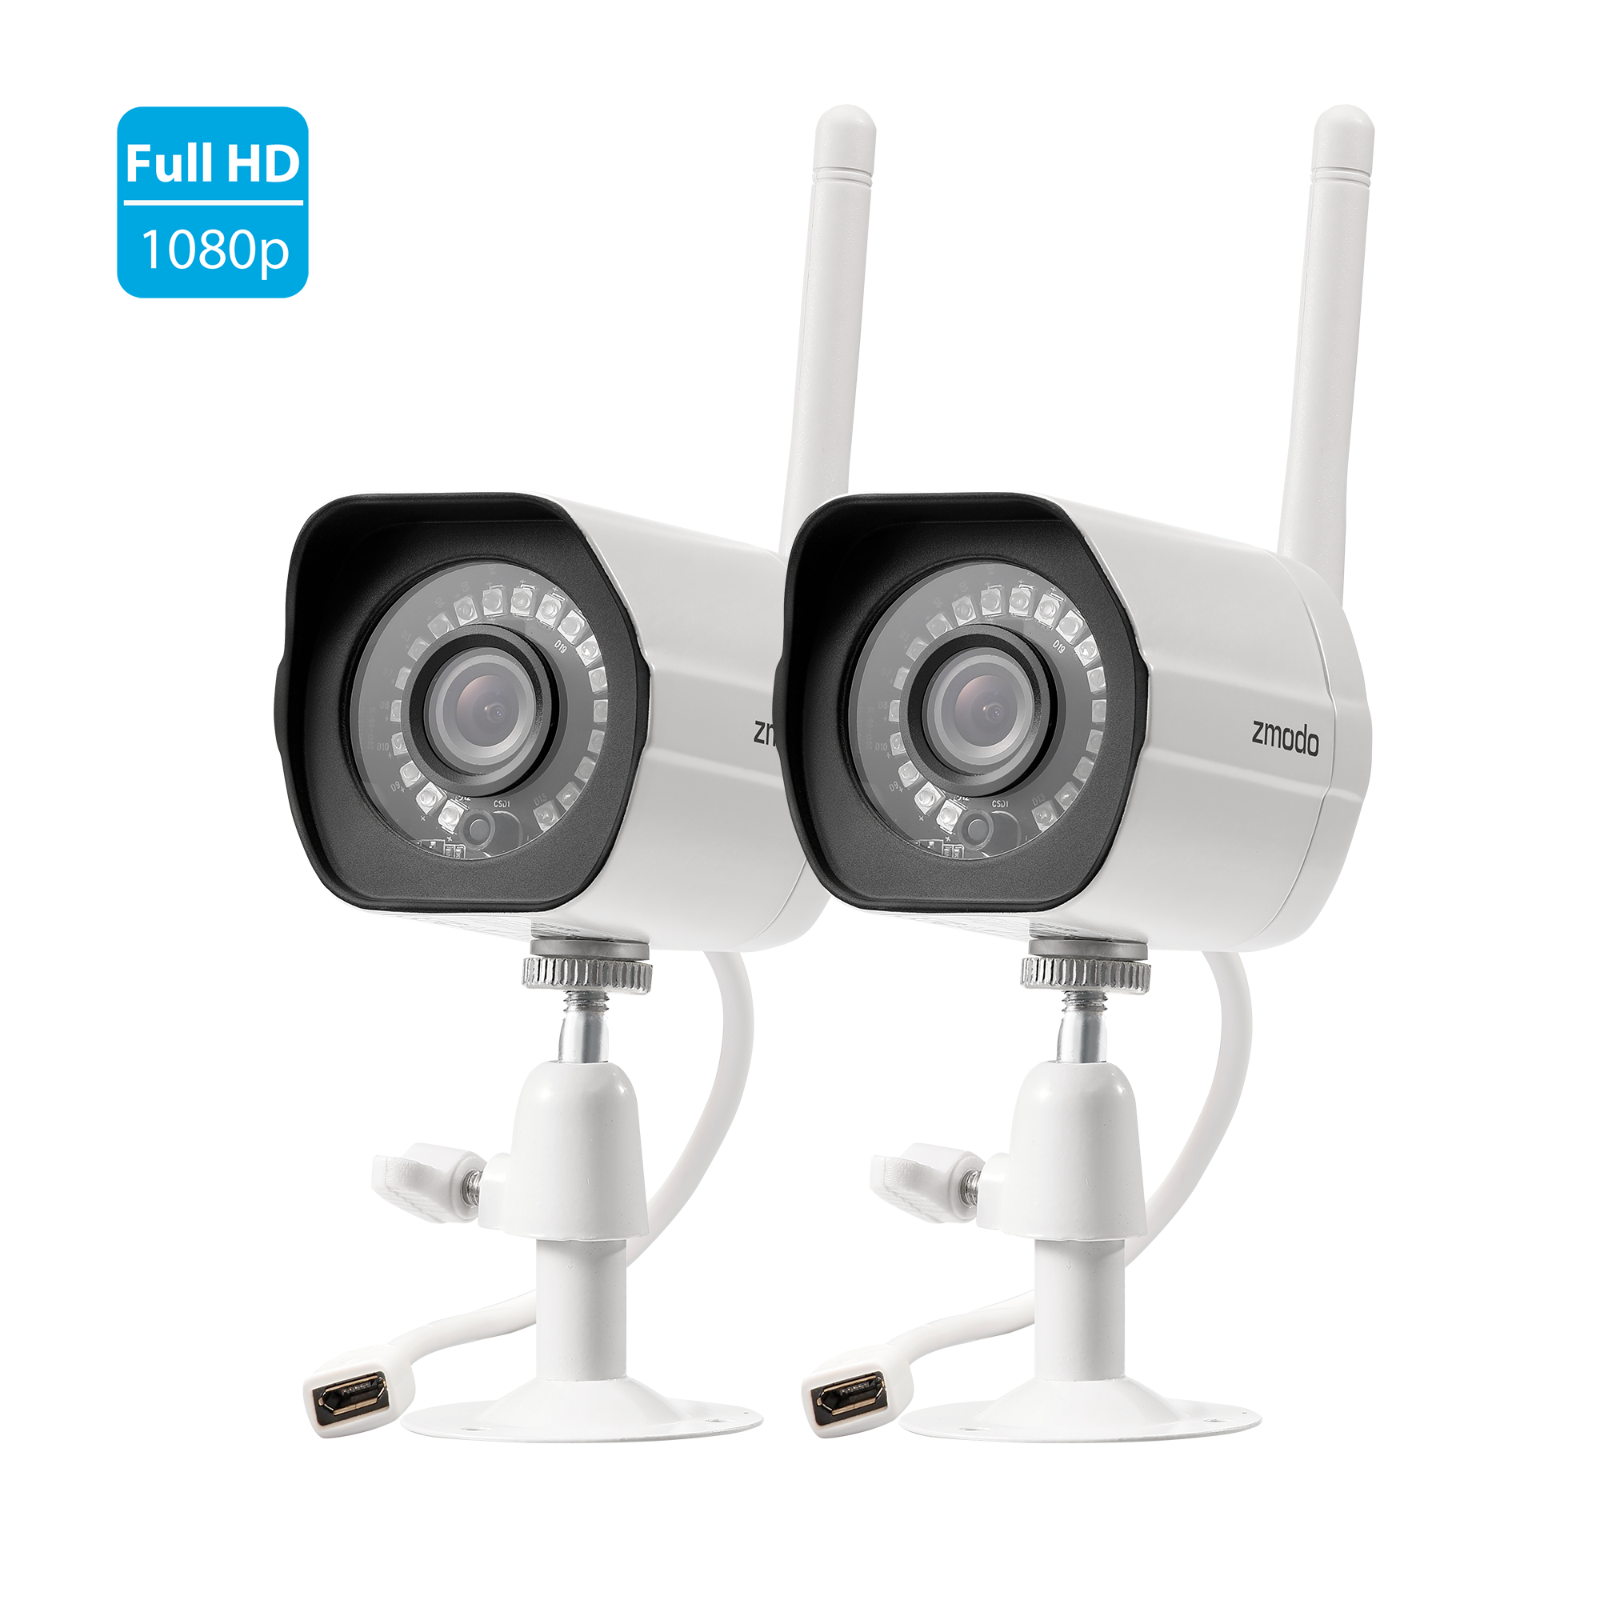 Zmodo 1080p WiFi Indoor / Outdoor Home Security Surveillance Camera *2 Pack*